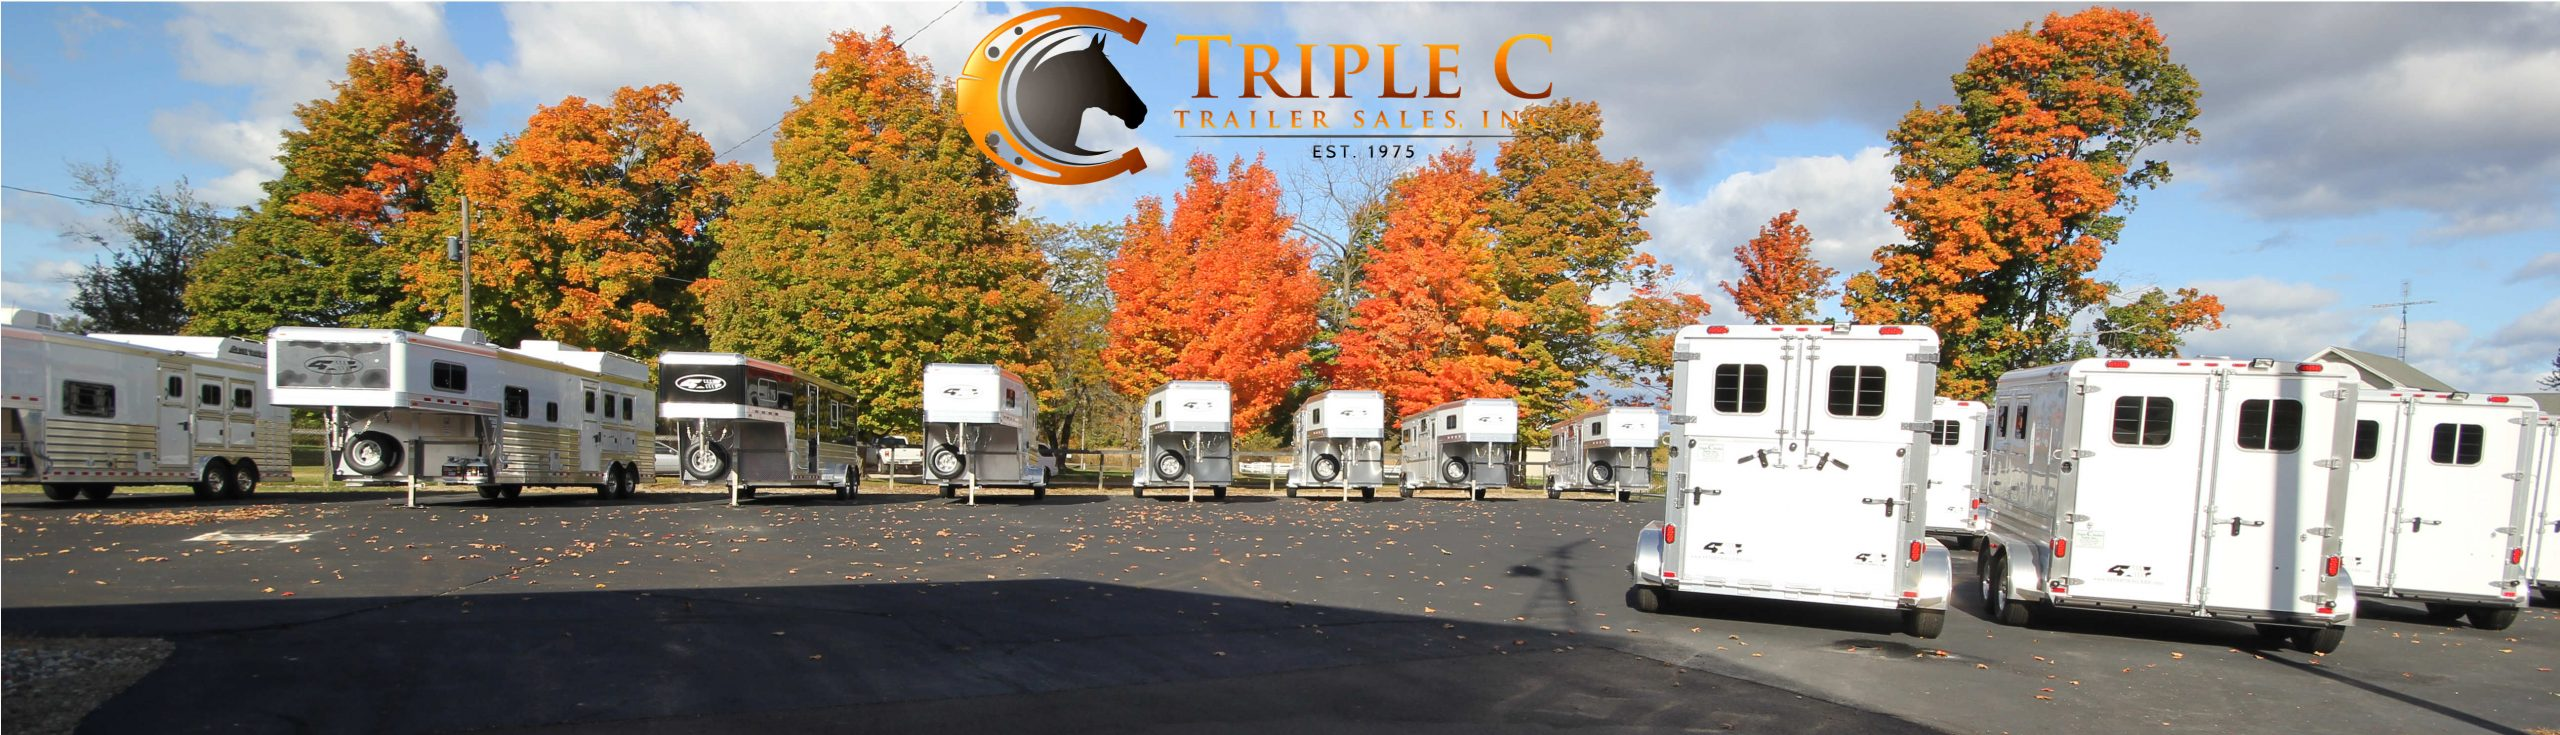 Triple C Trailer Sales Inc - Michigan's premier horse trailer dealer